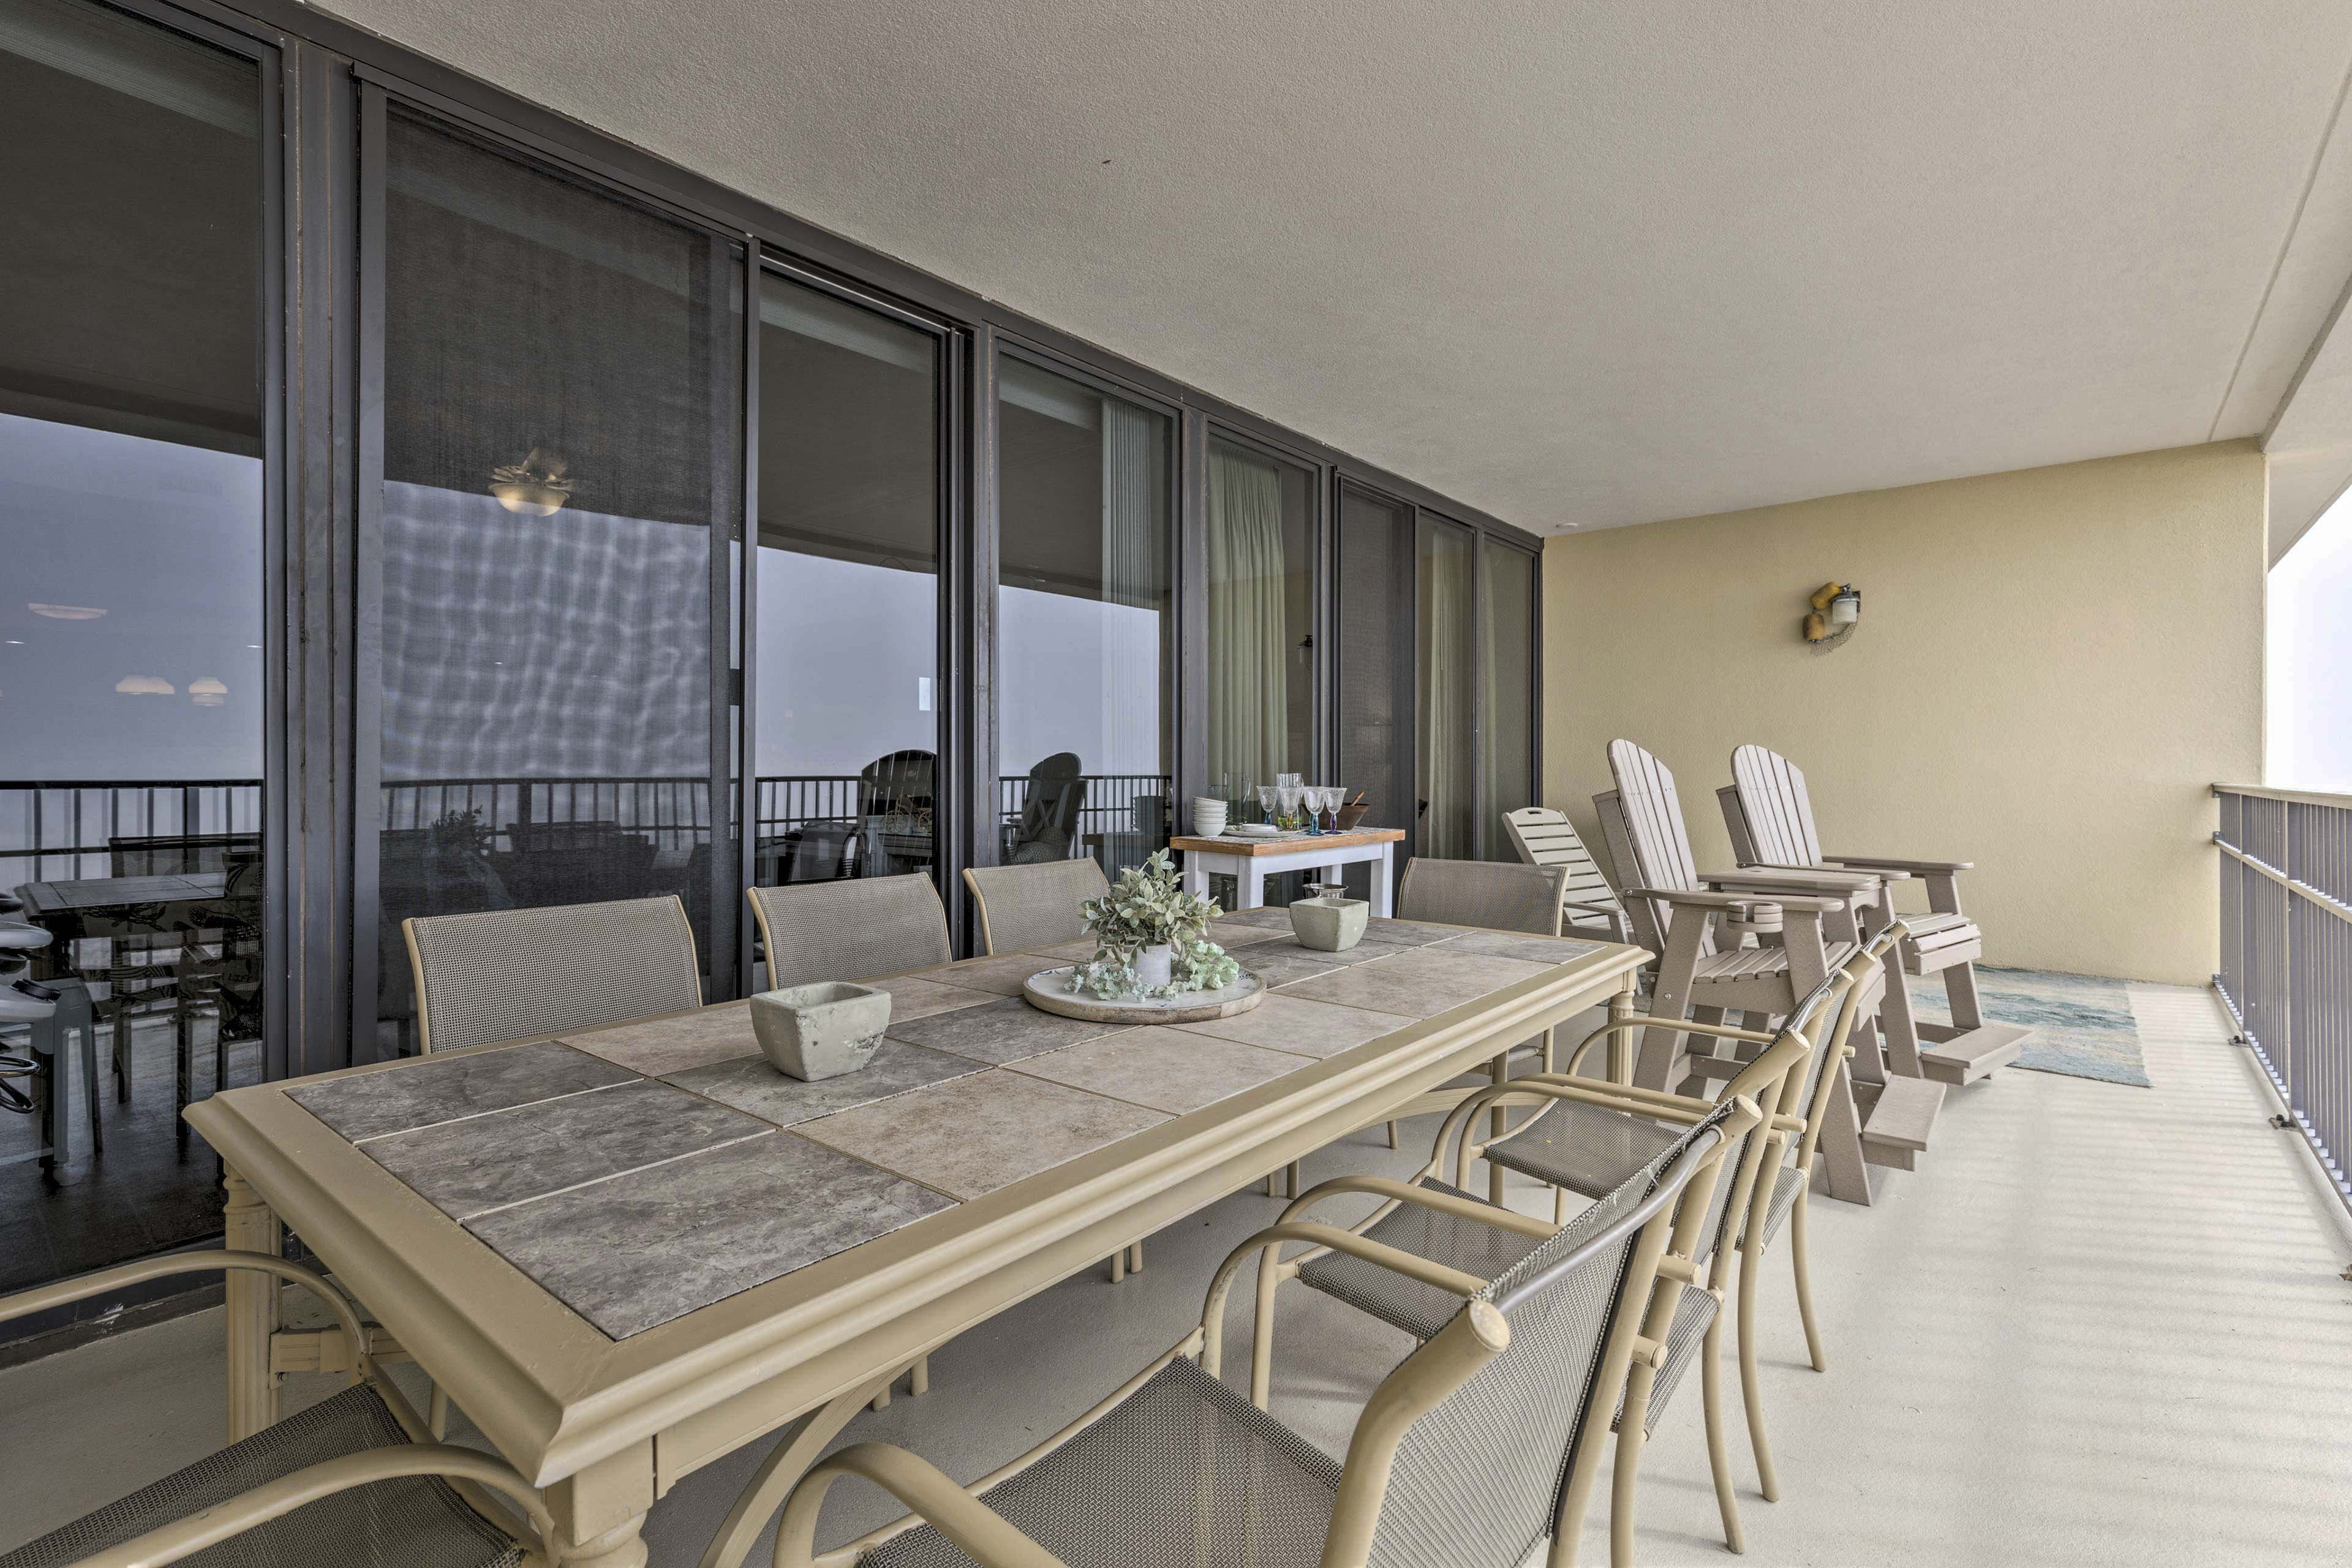 Private Balcony | Outdoor Dining Area